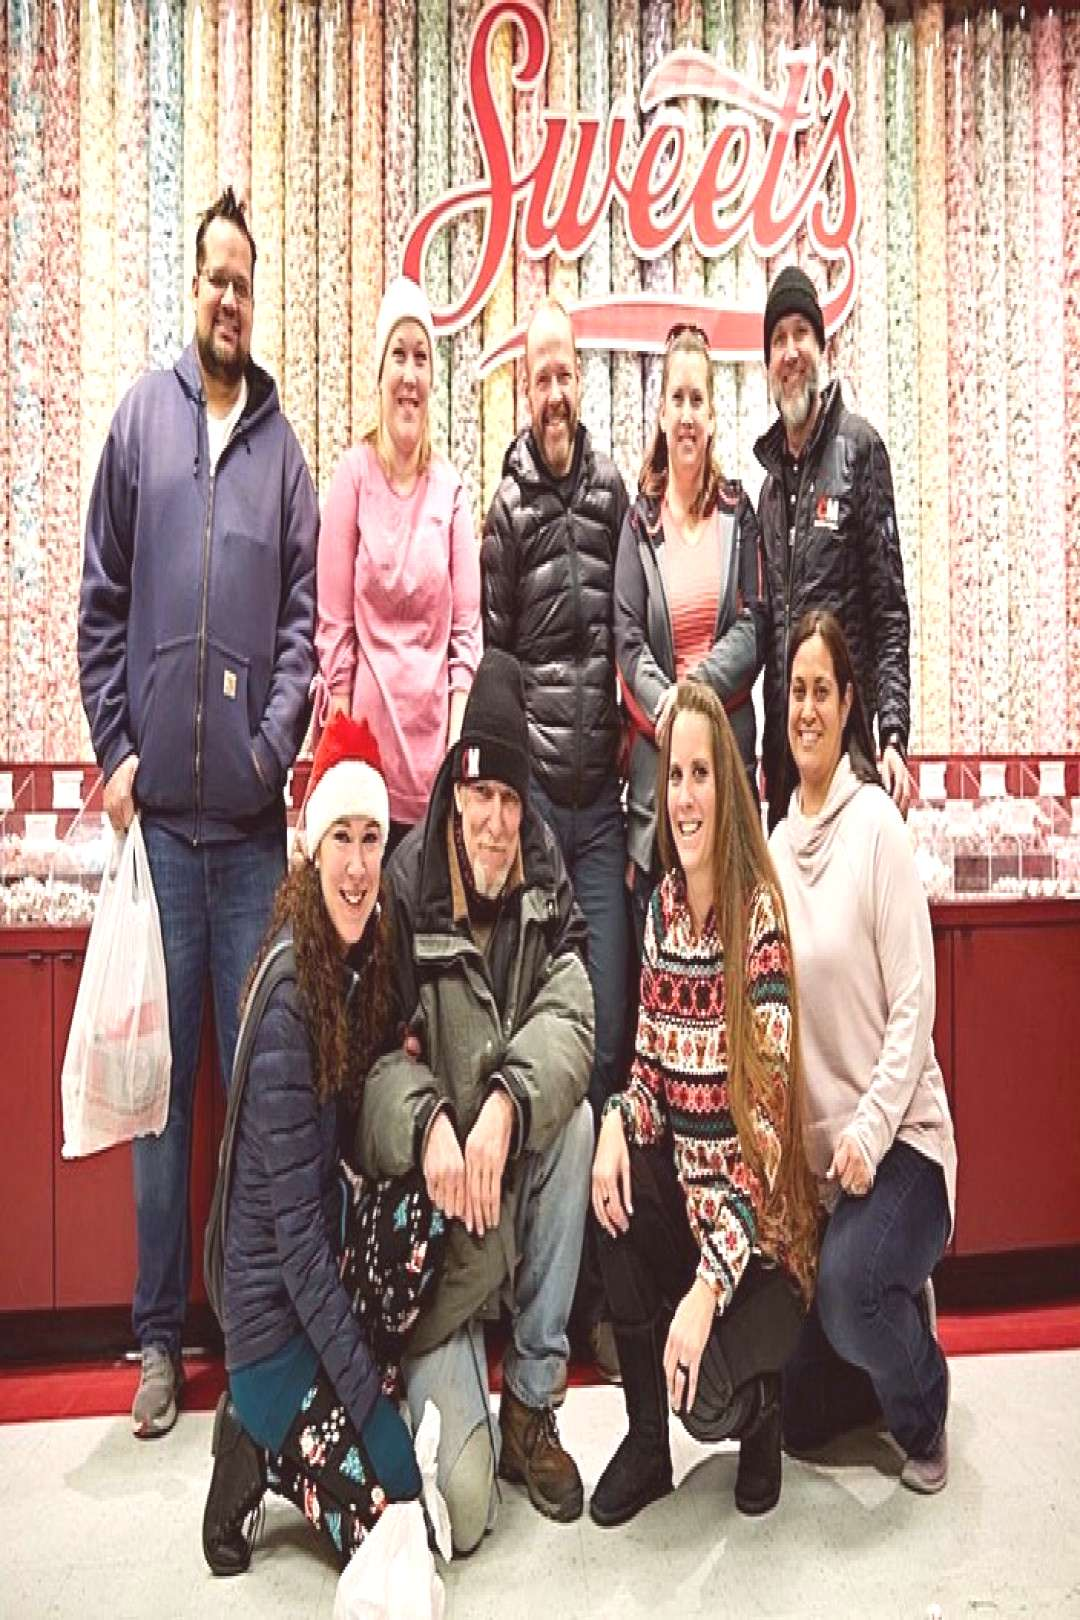 December 17th we took our group to the Sweet Candy Company for a